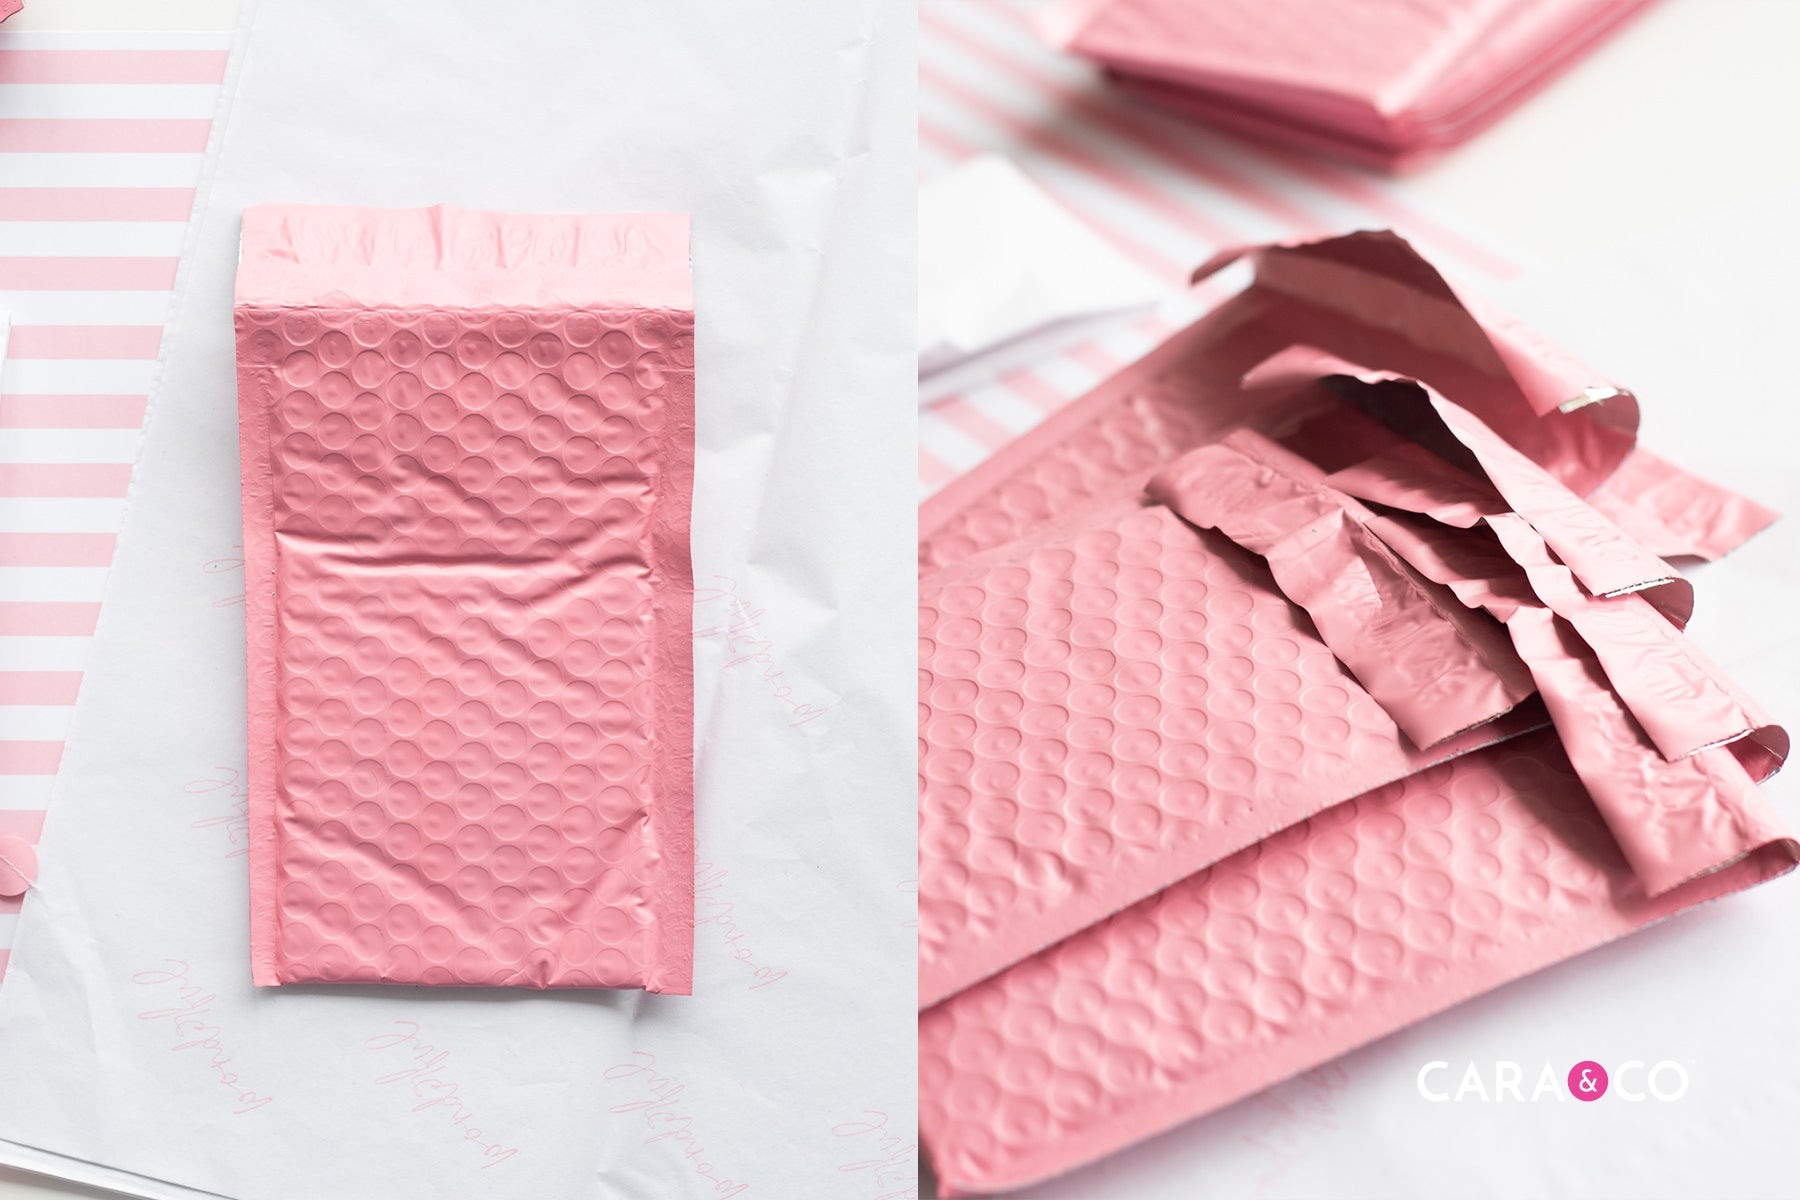 Packaging hacks for your small business - Make an impact! - Cara & Co Blog